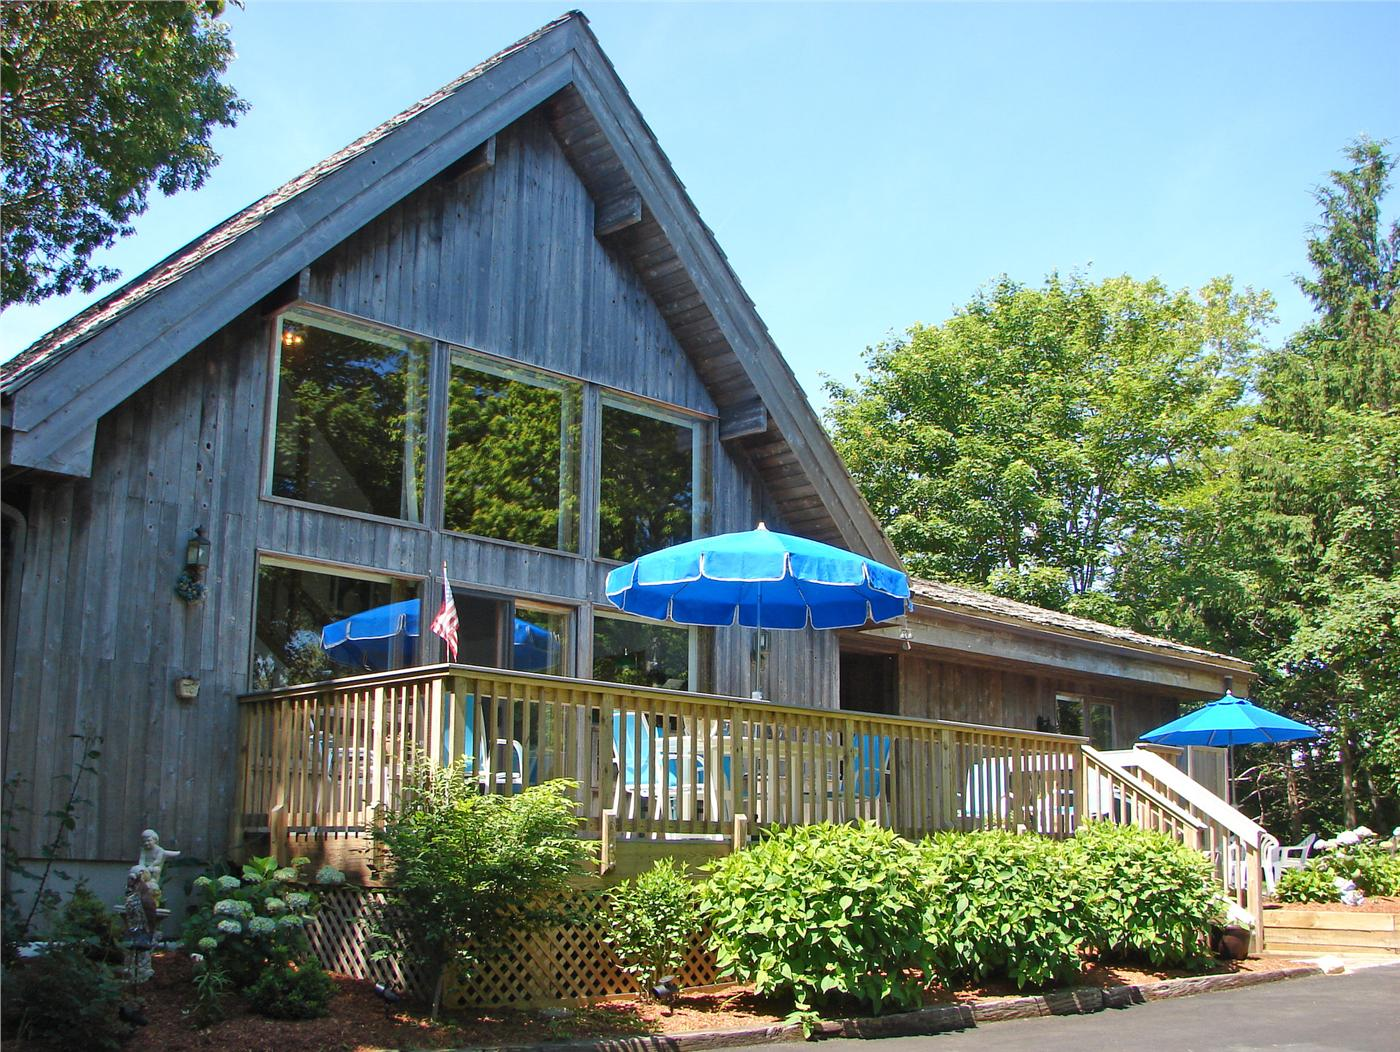 Wellfleet Vacation Rental Home In Cape Cod Ma 02667 5